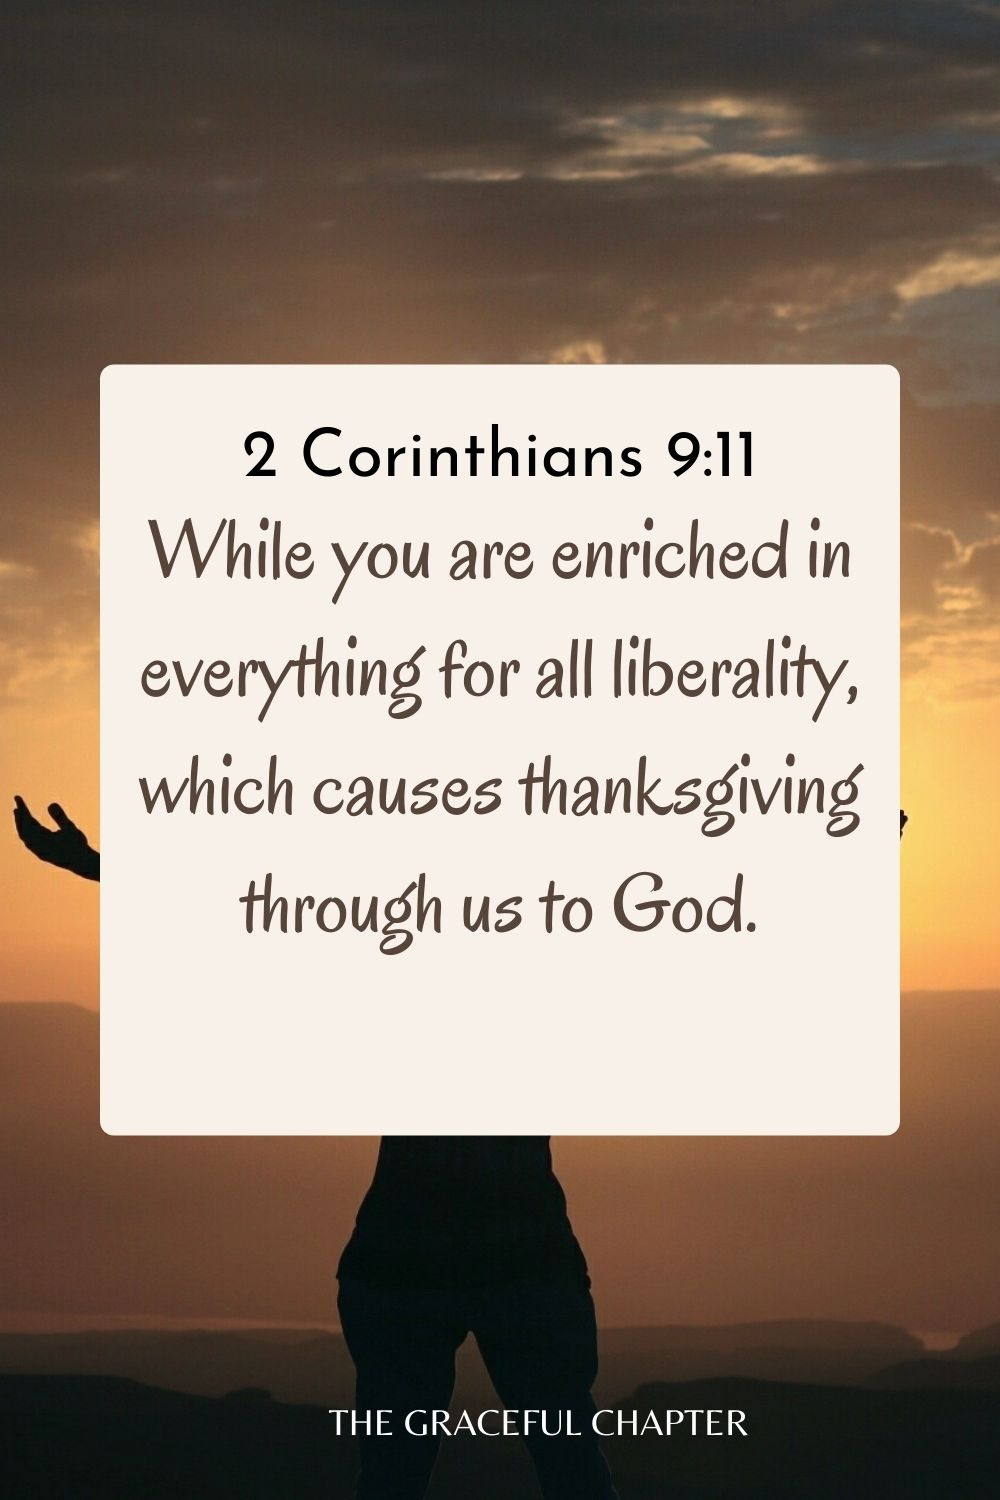 While you are enriched in everything for all liberality, which causes thanksgiving through us to God. 2 Corinthians 9:11